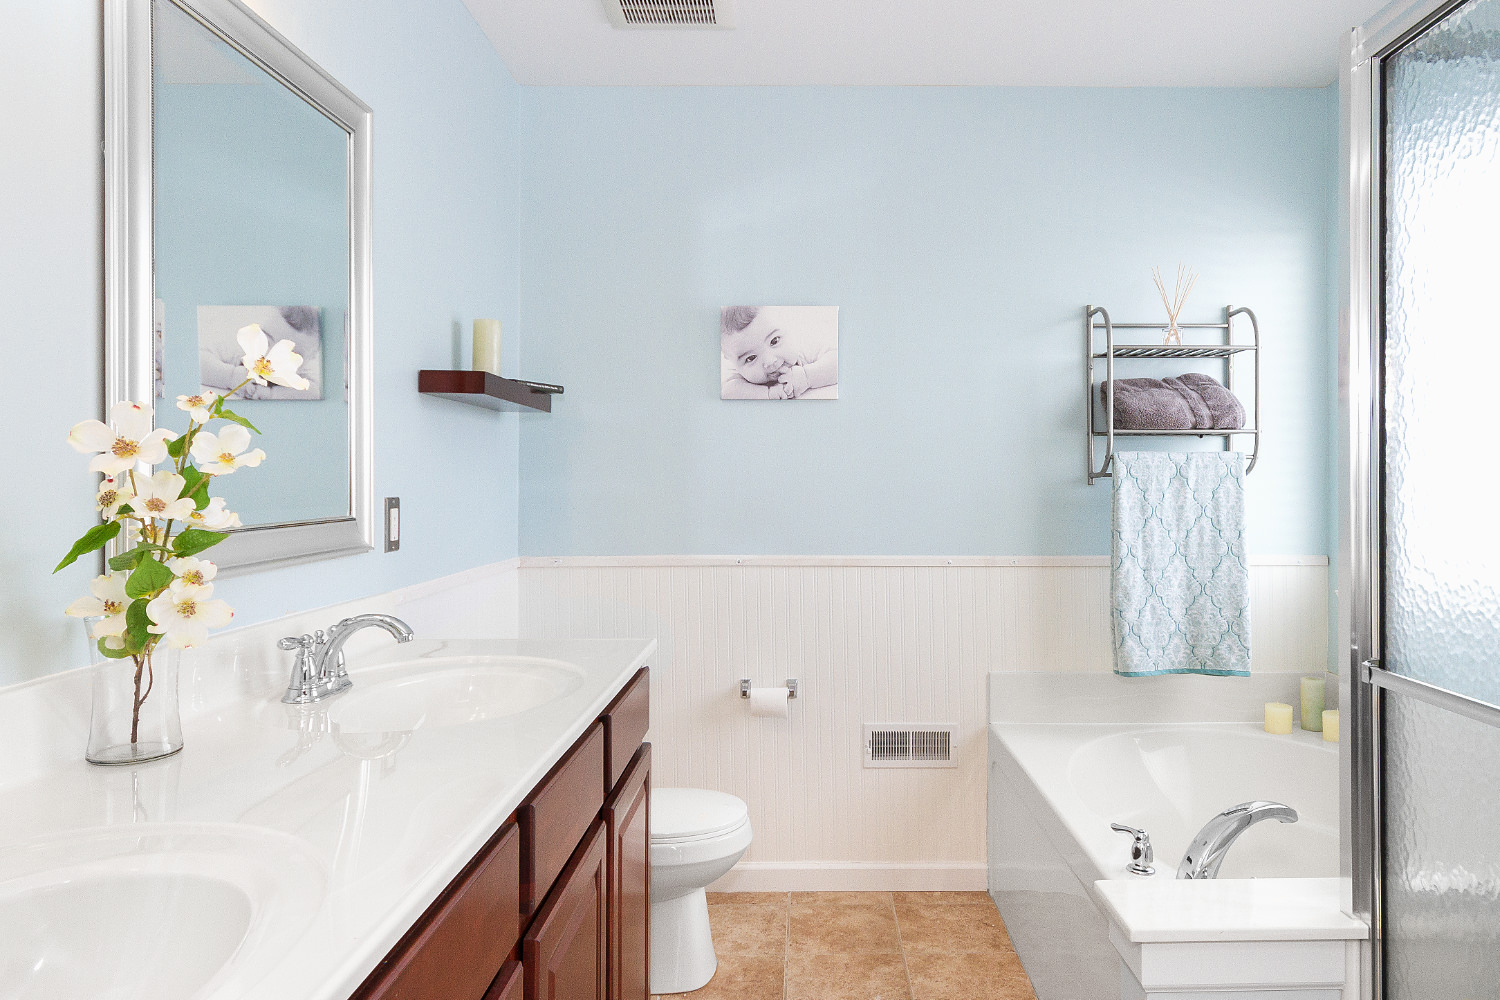 bathroom-with-soft-light-blue-walls-picture-baby-flowers-jason-lusk-portfolio.jpg